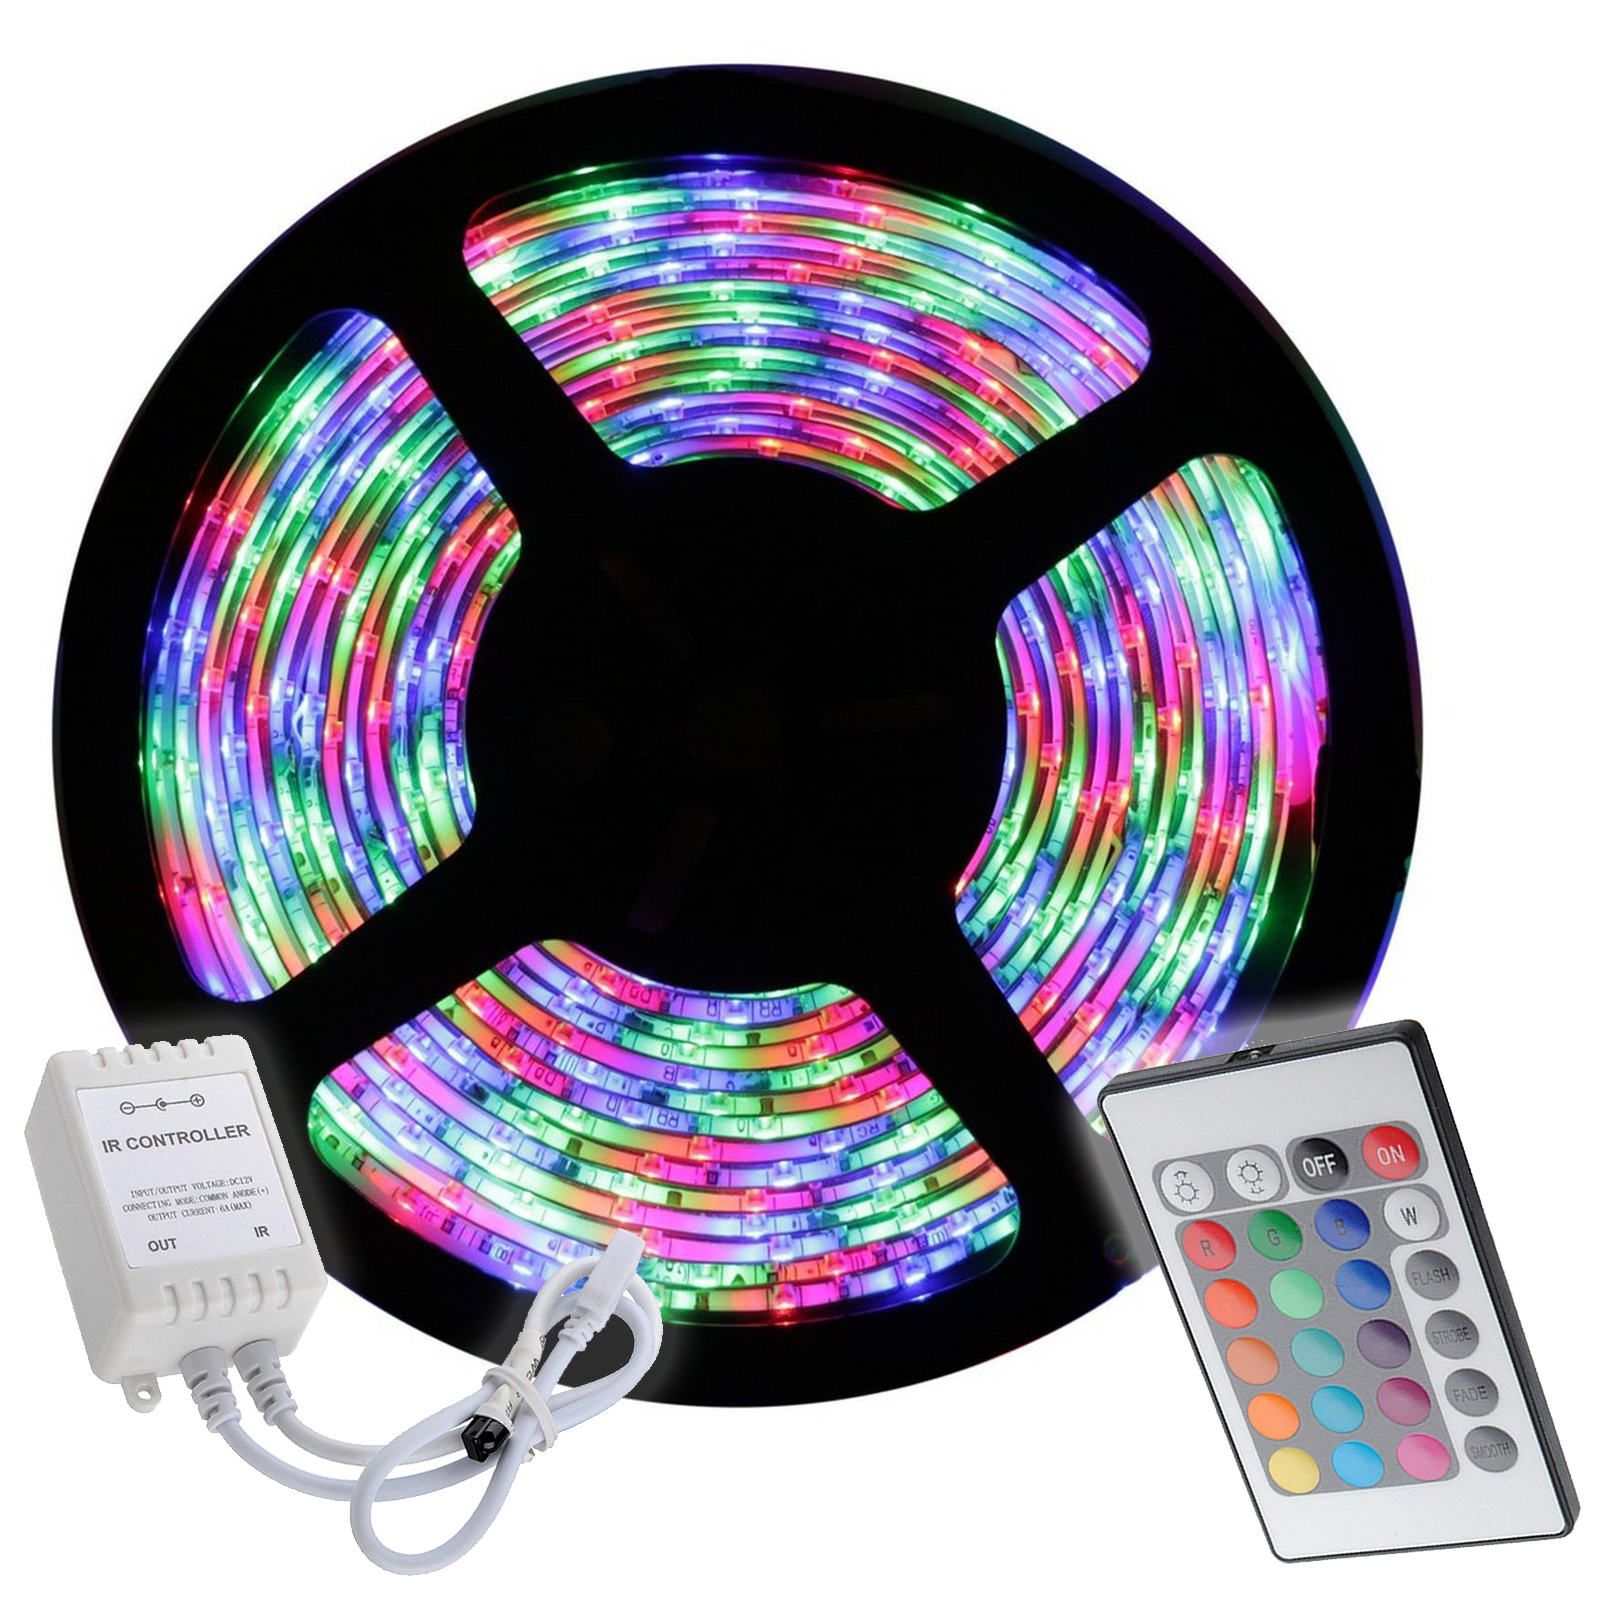 Strip 300 RGB LED 5 meters 35W, 15 color 4 games light car boat rv 12V